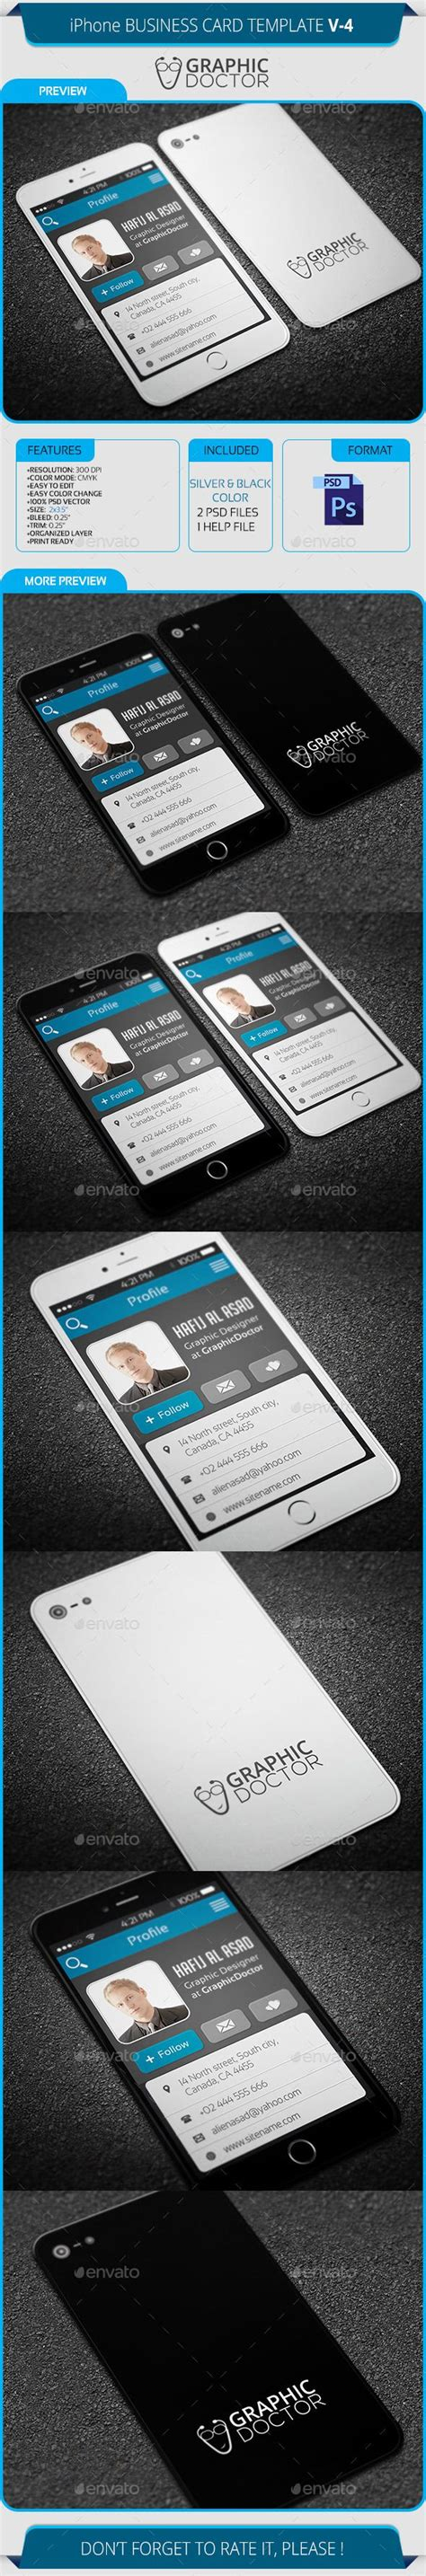 iphone business card template iphone business card template v 4 card templates